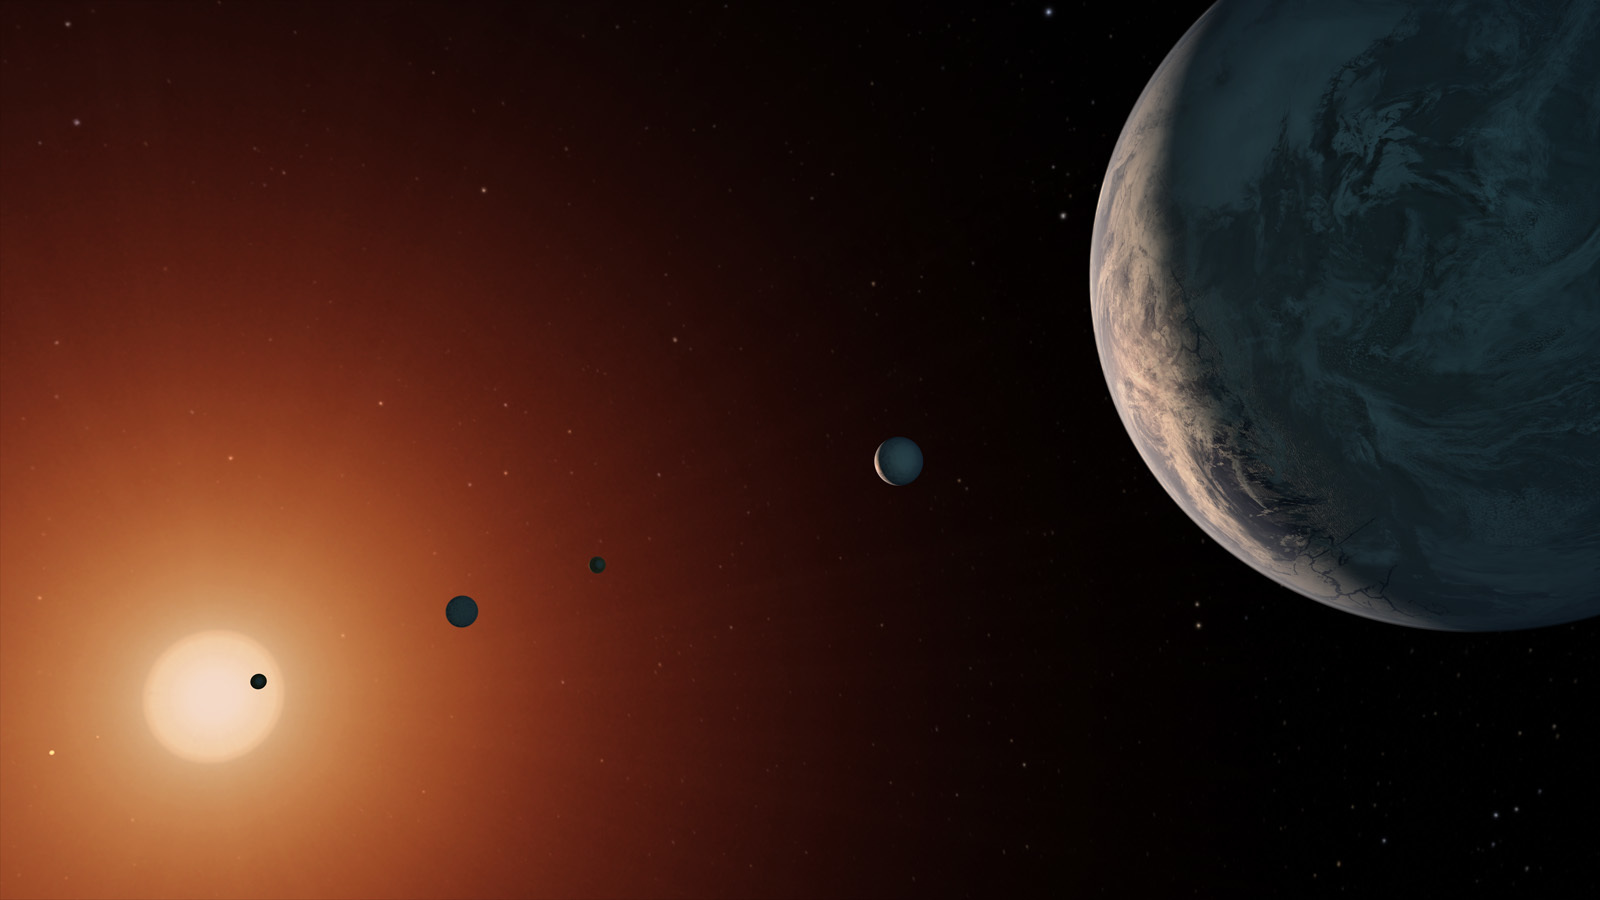 Illustration of TRAPPIST-1 system from space.